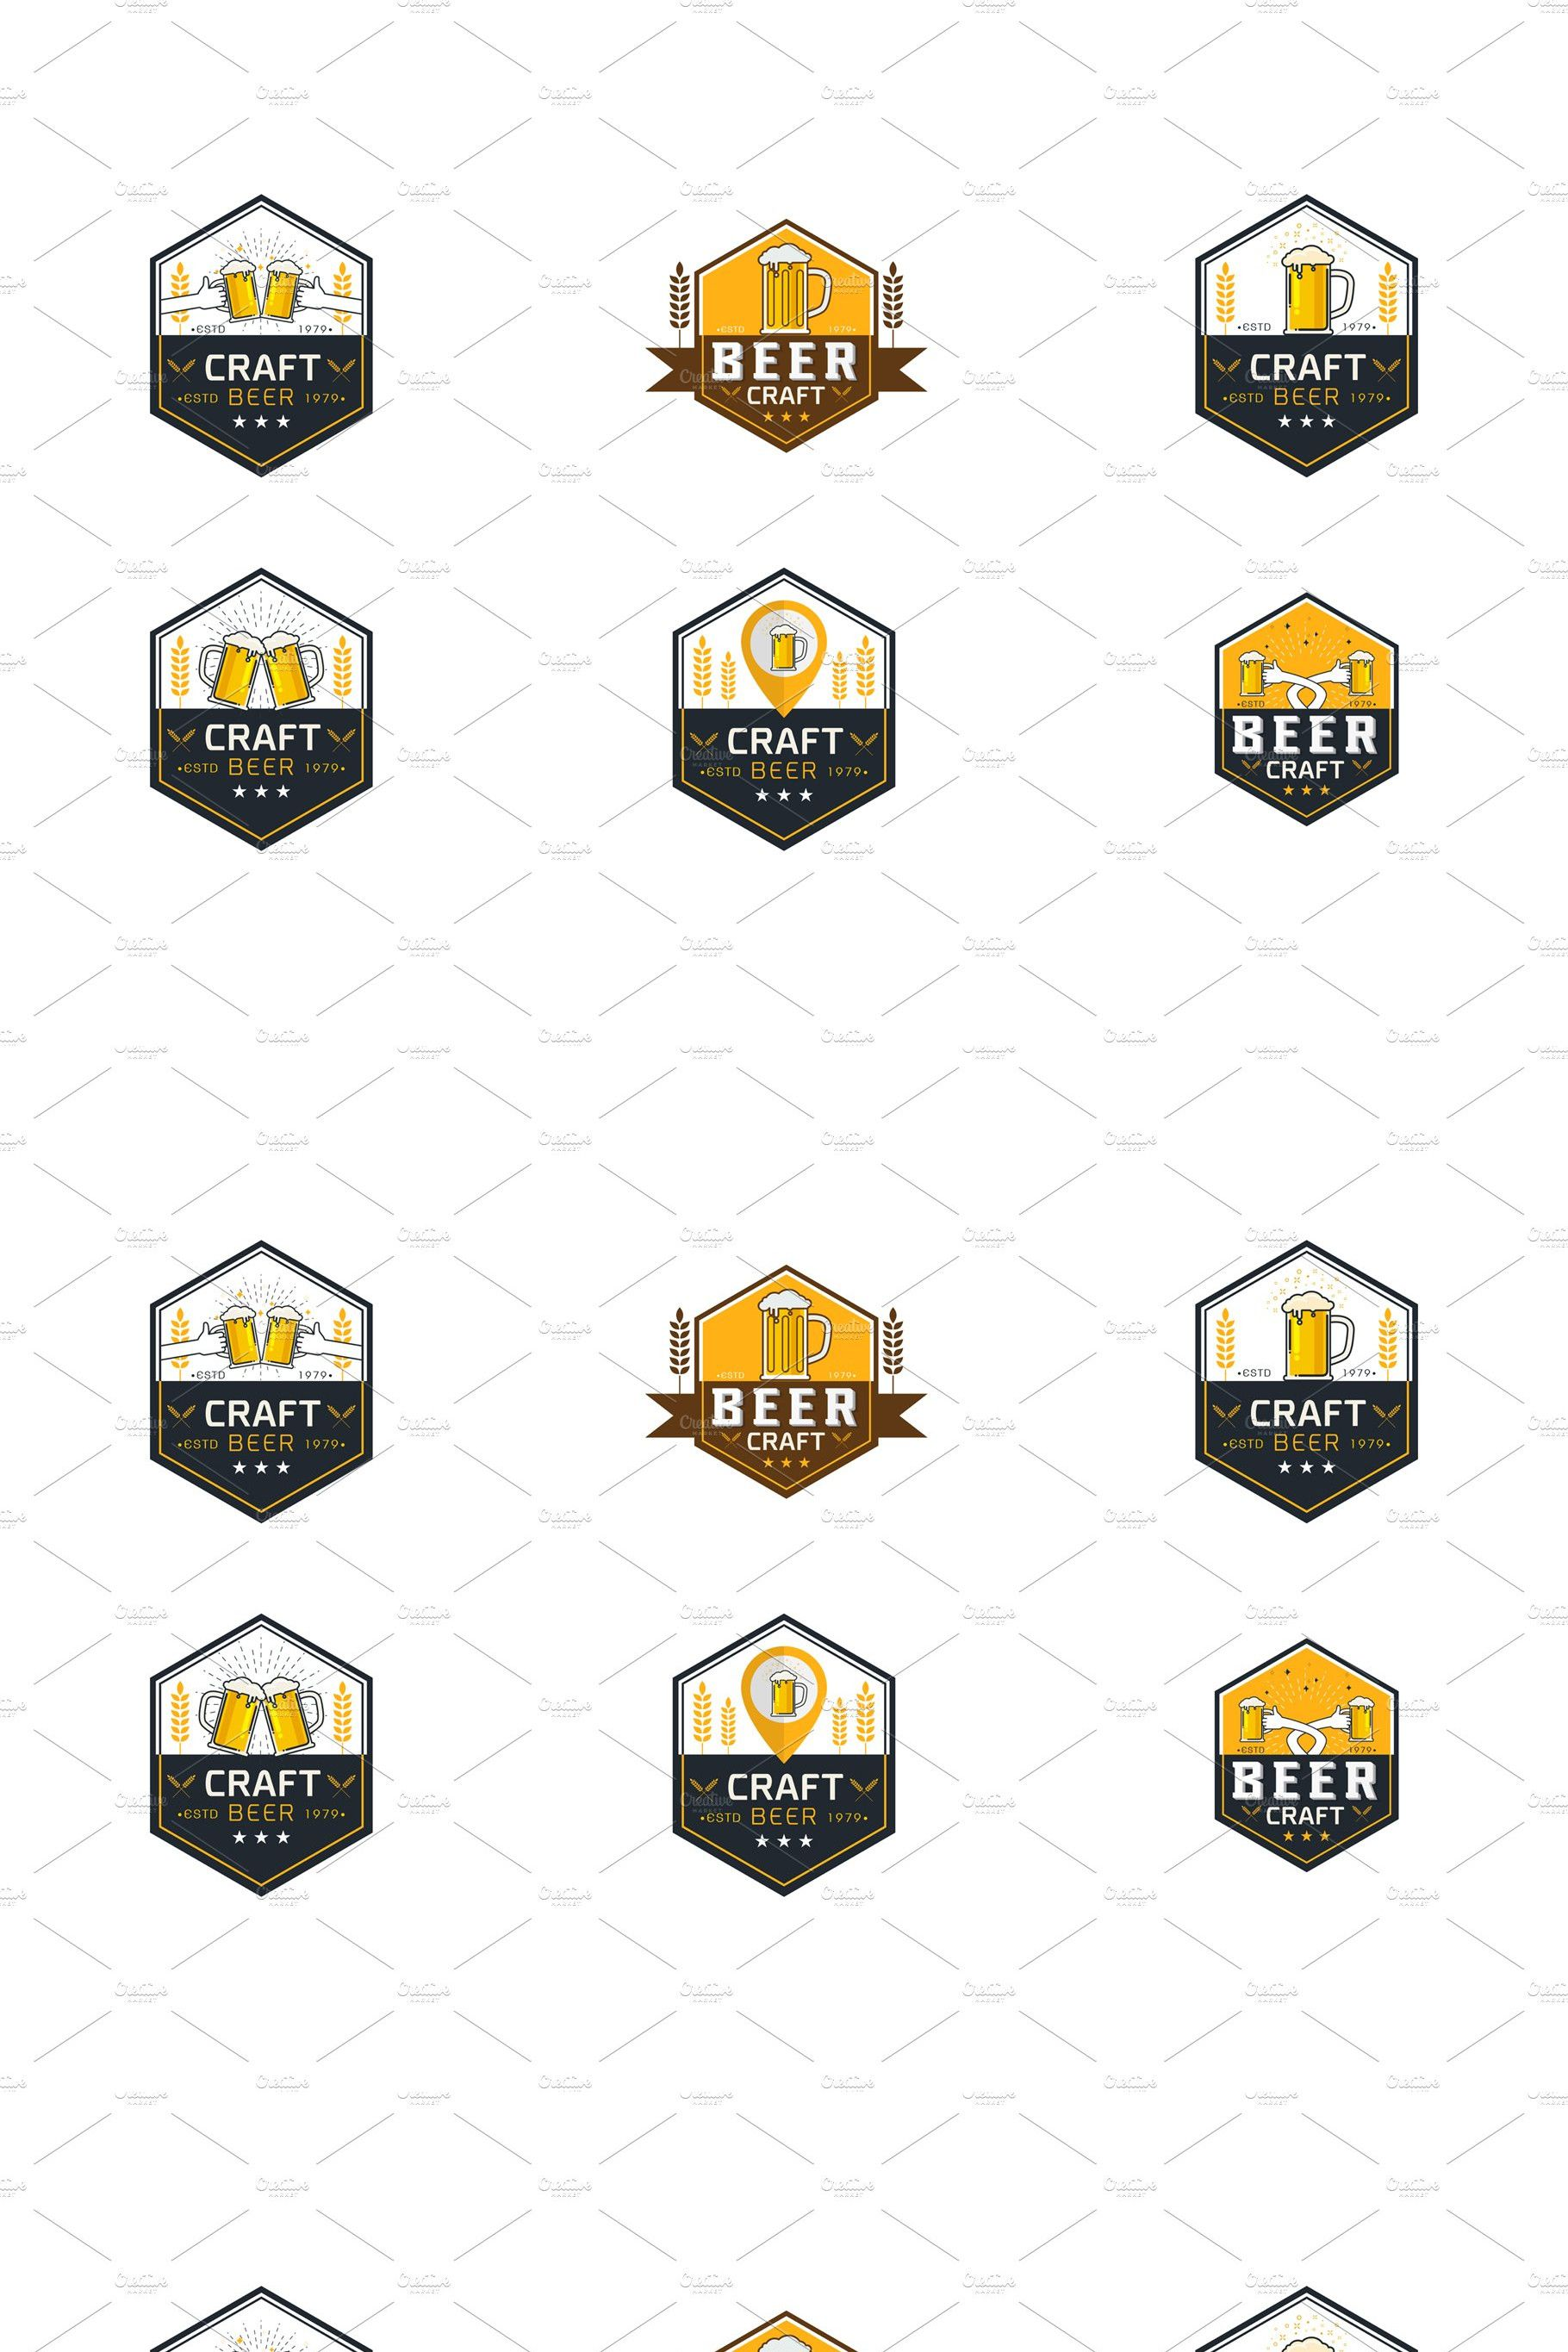 Craft Beer Logo Vector Illustration Craft Beer Illustration Crafts